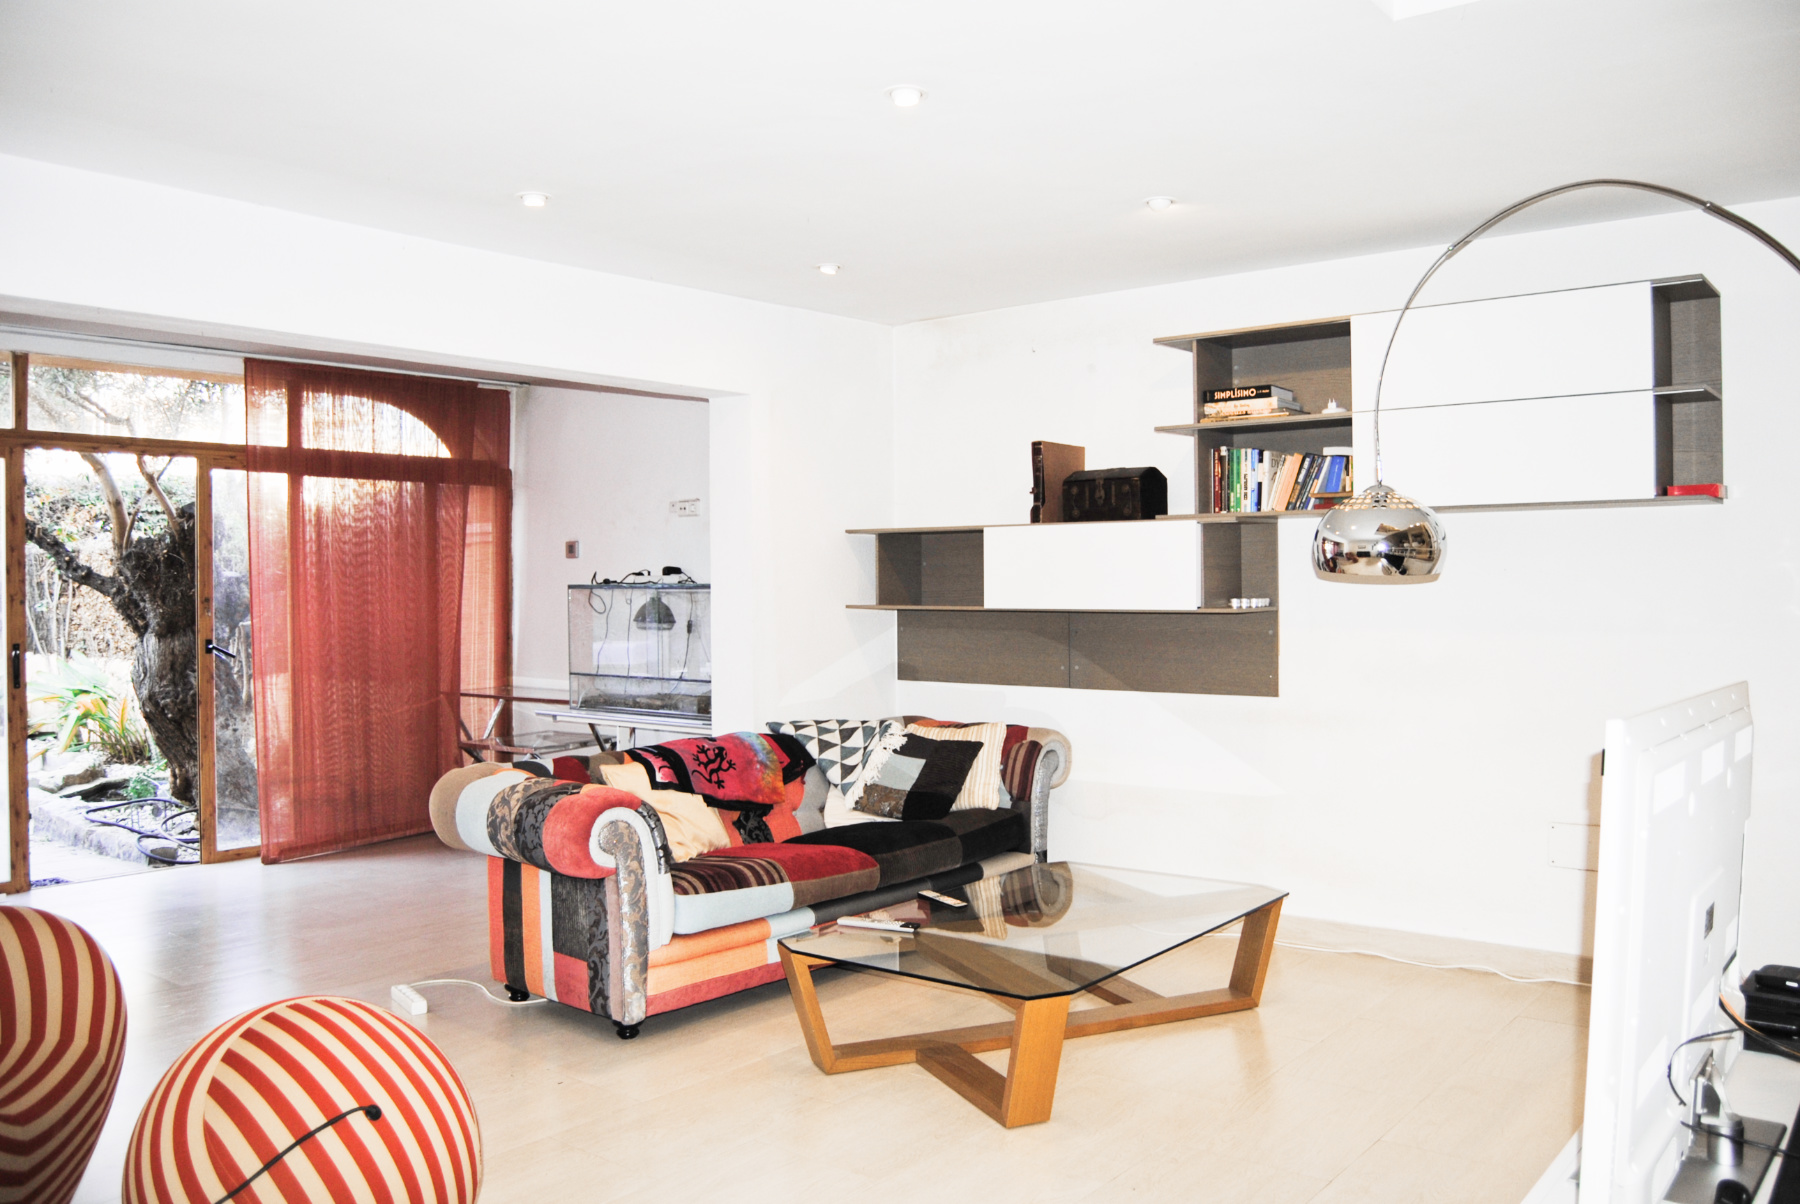 Spacious townhouse on various levels in a central neighbourhood